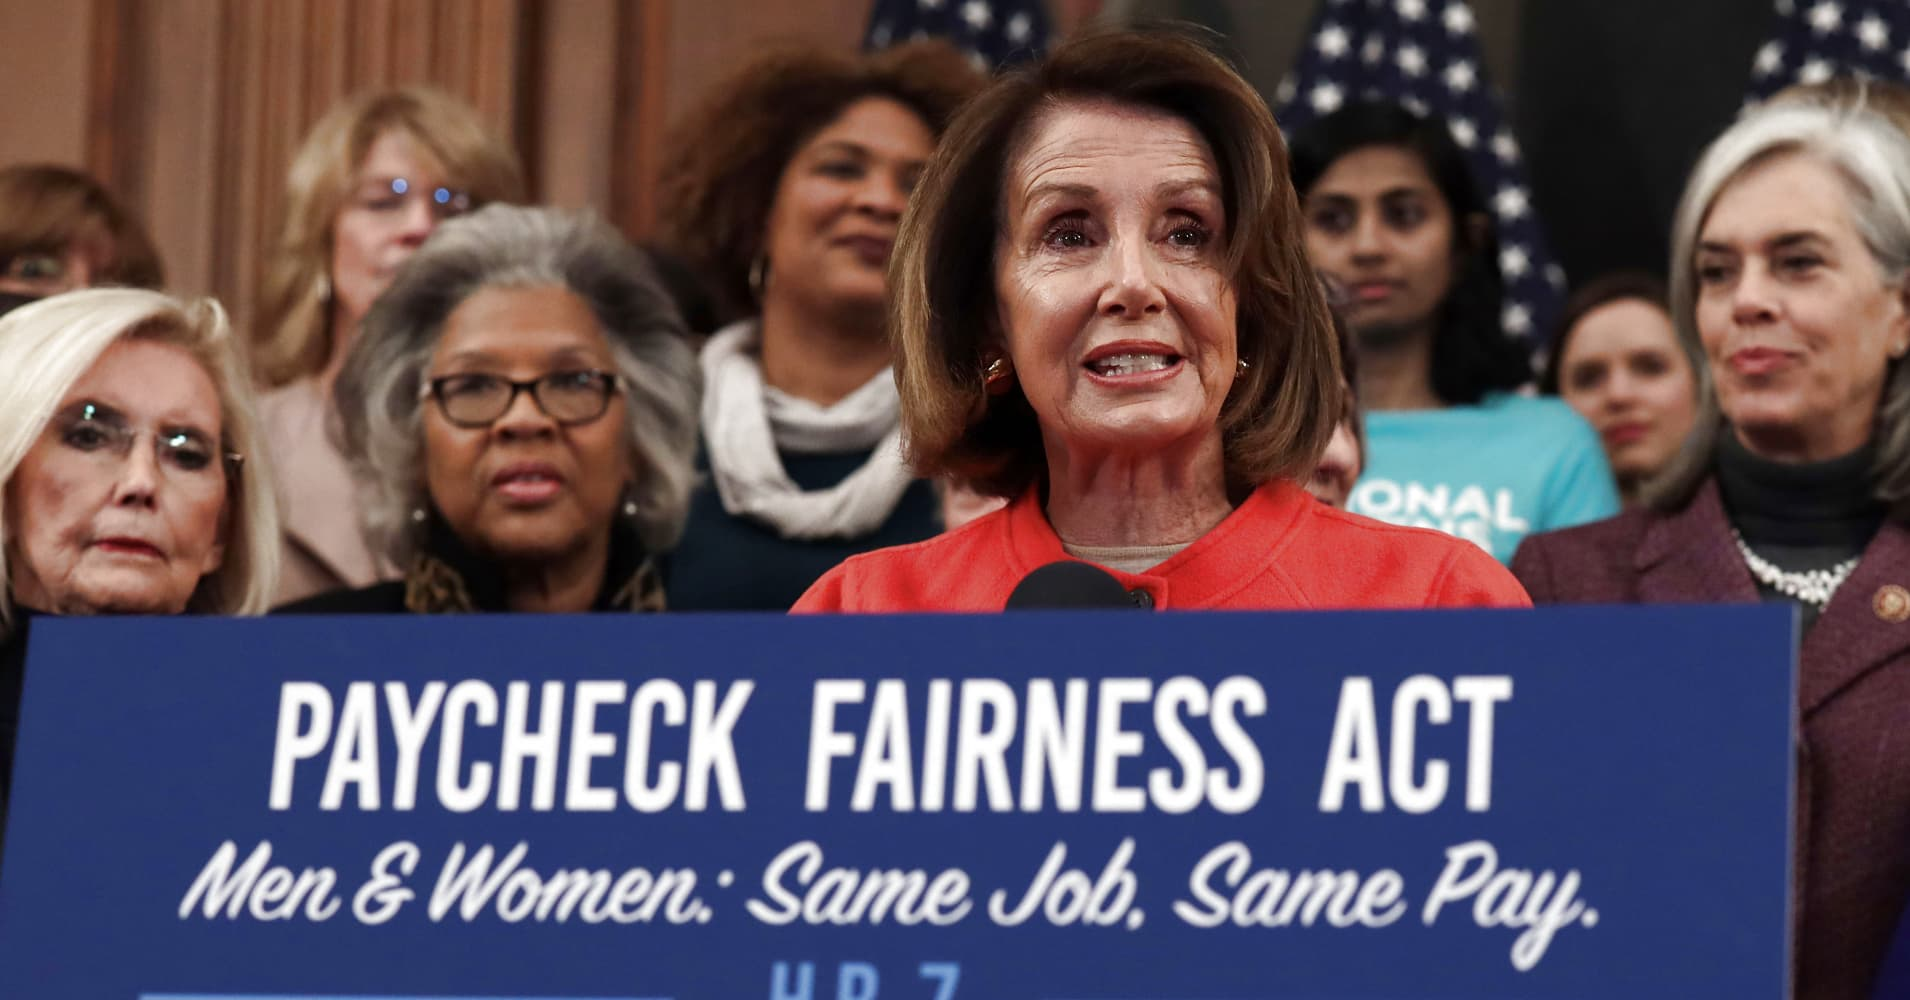 U.S. Speaker of the House Rep. Nancy Pelosi (D-CA) speaks during a news conference at the U.S. Capitol January 30, 2019 in Washington, DC. House Democrats held a news conference to introduce the 'Paycheck Fairness Act.'